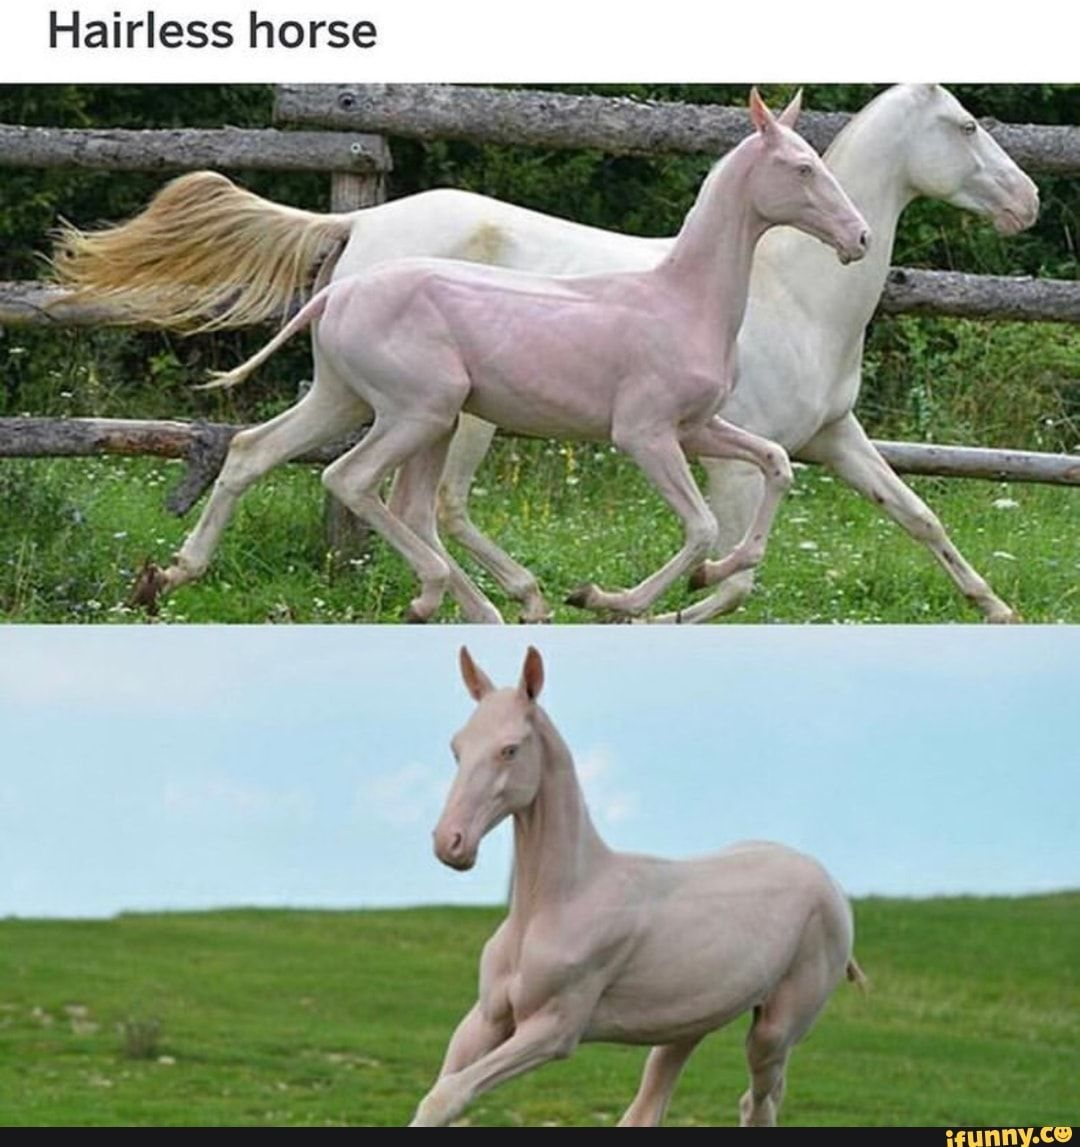 Weird, interesting colored horses   Horses, Hairless